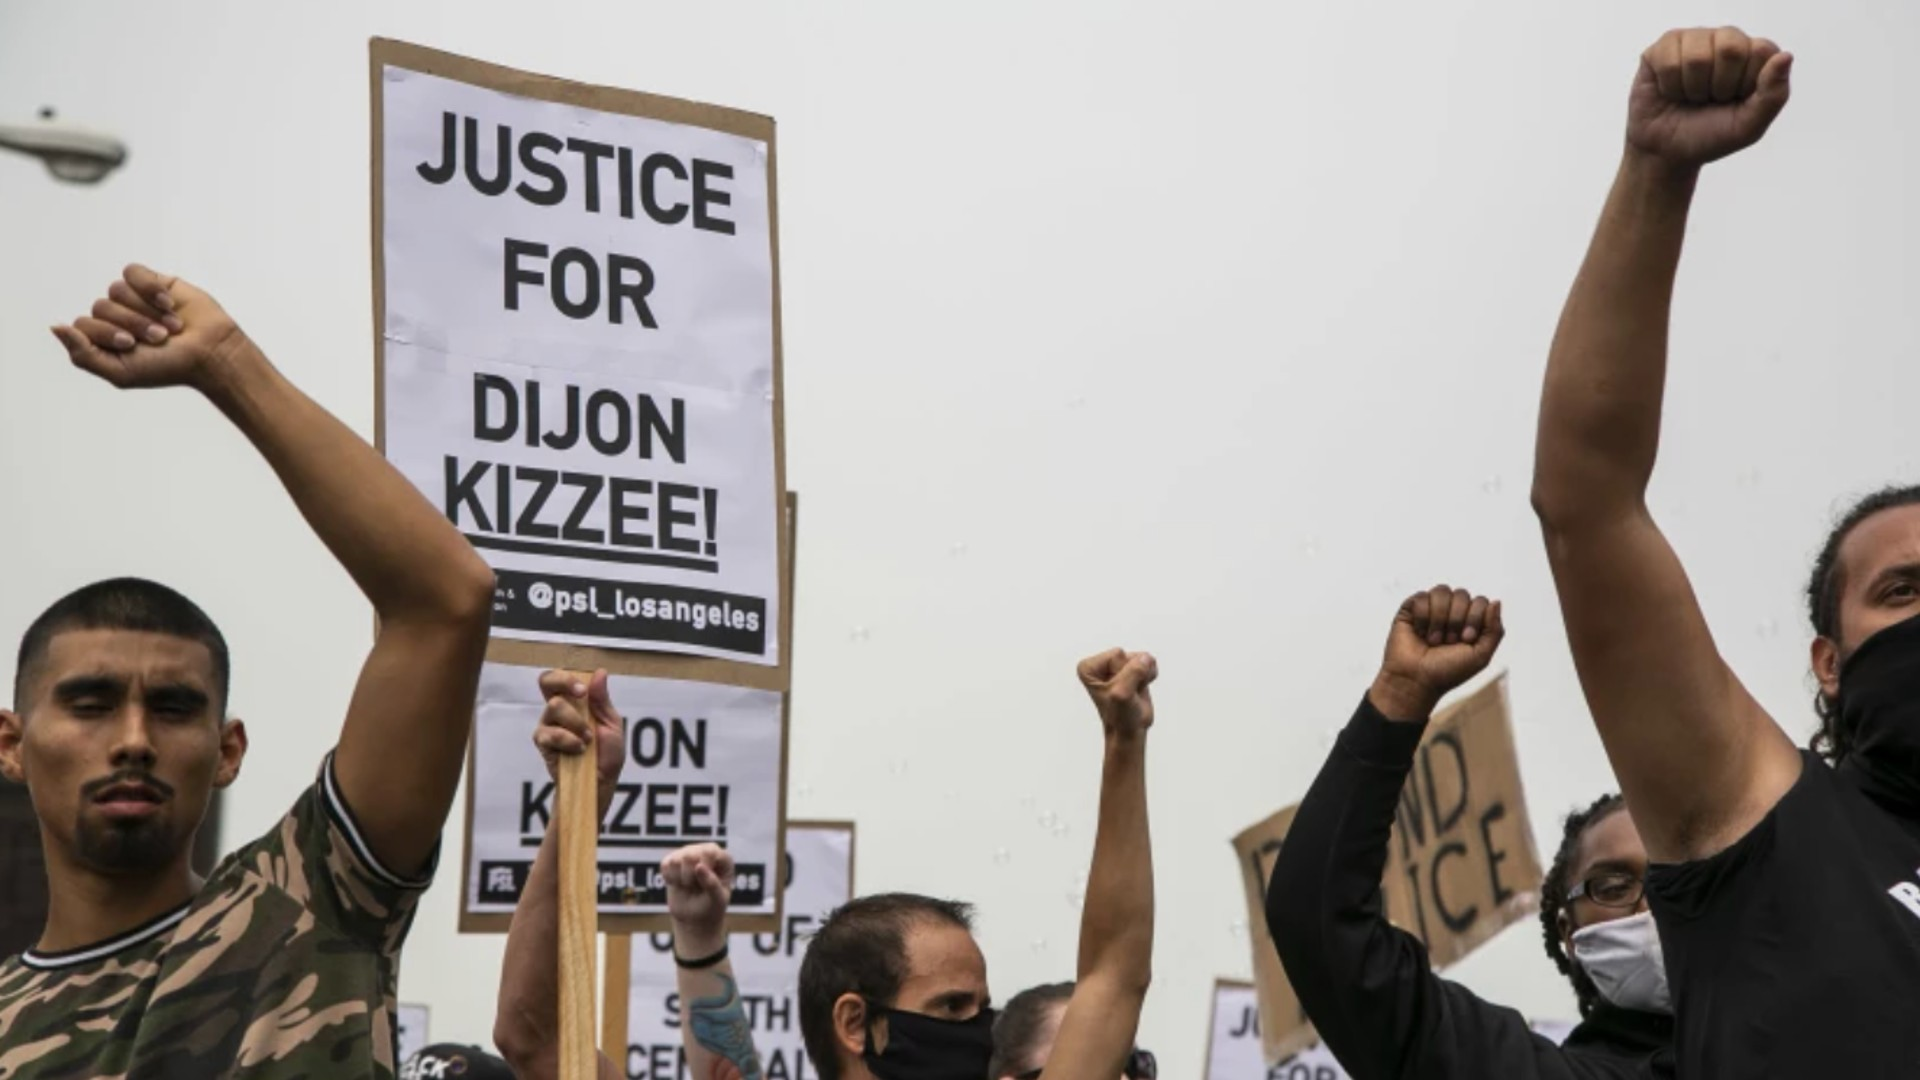 Protesters raise their fists as they march down Vermont Ave. during a protest calling for justice and in honor of Dijon Kizzee on Sept. 12, 2020, in South Los Angeles. Kizzee was killed by L.A. County sheriff's deputies in the Westmont area. (Josie Norris / Los Angeles Times)